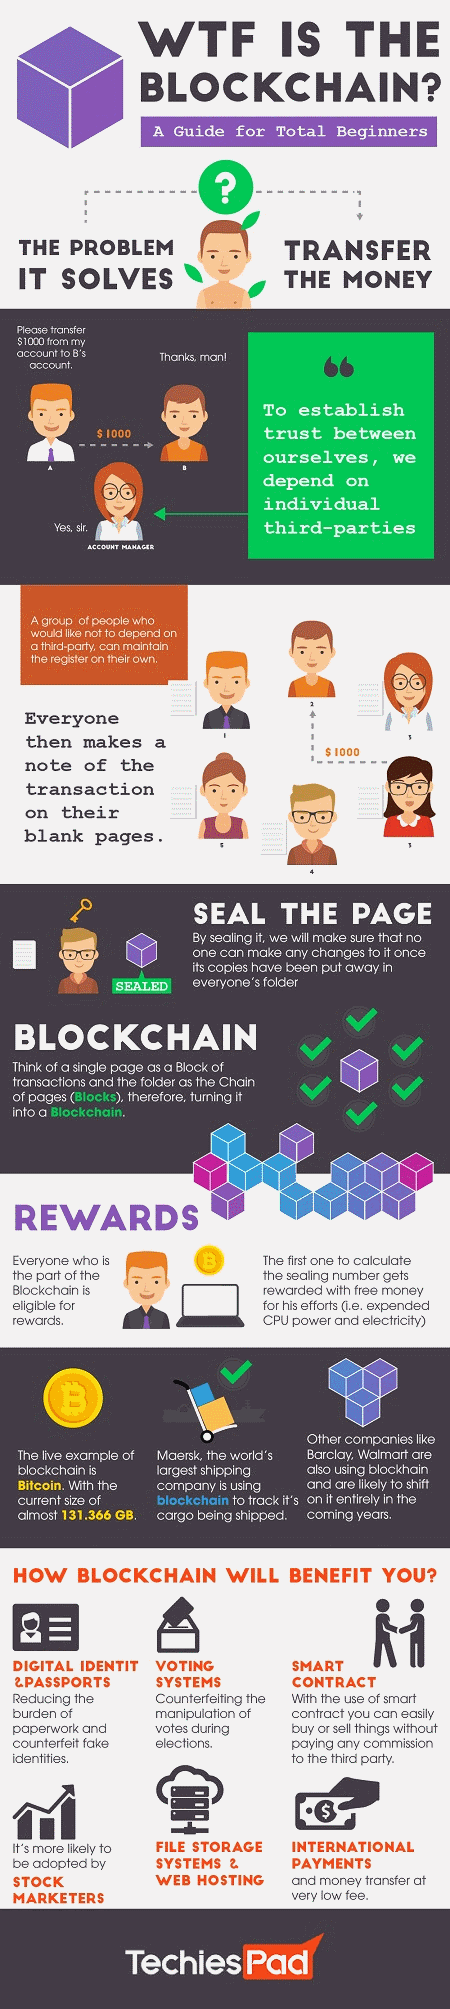 SecuringIndustry com - An ultimate beginner's guide to blockchain